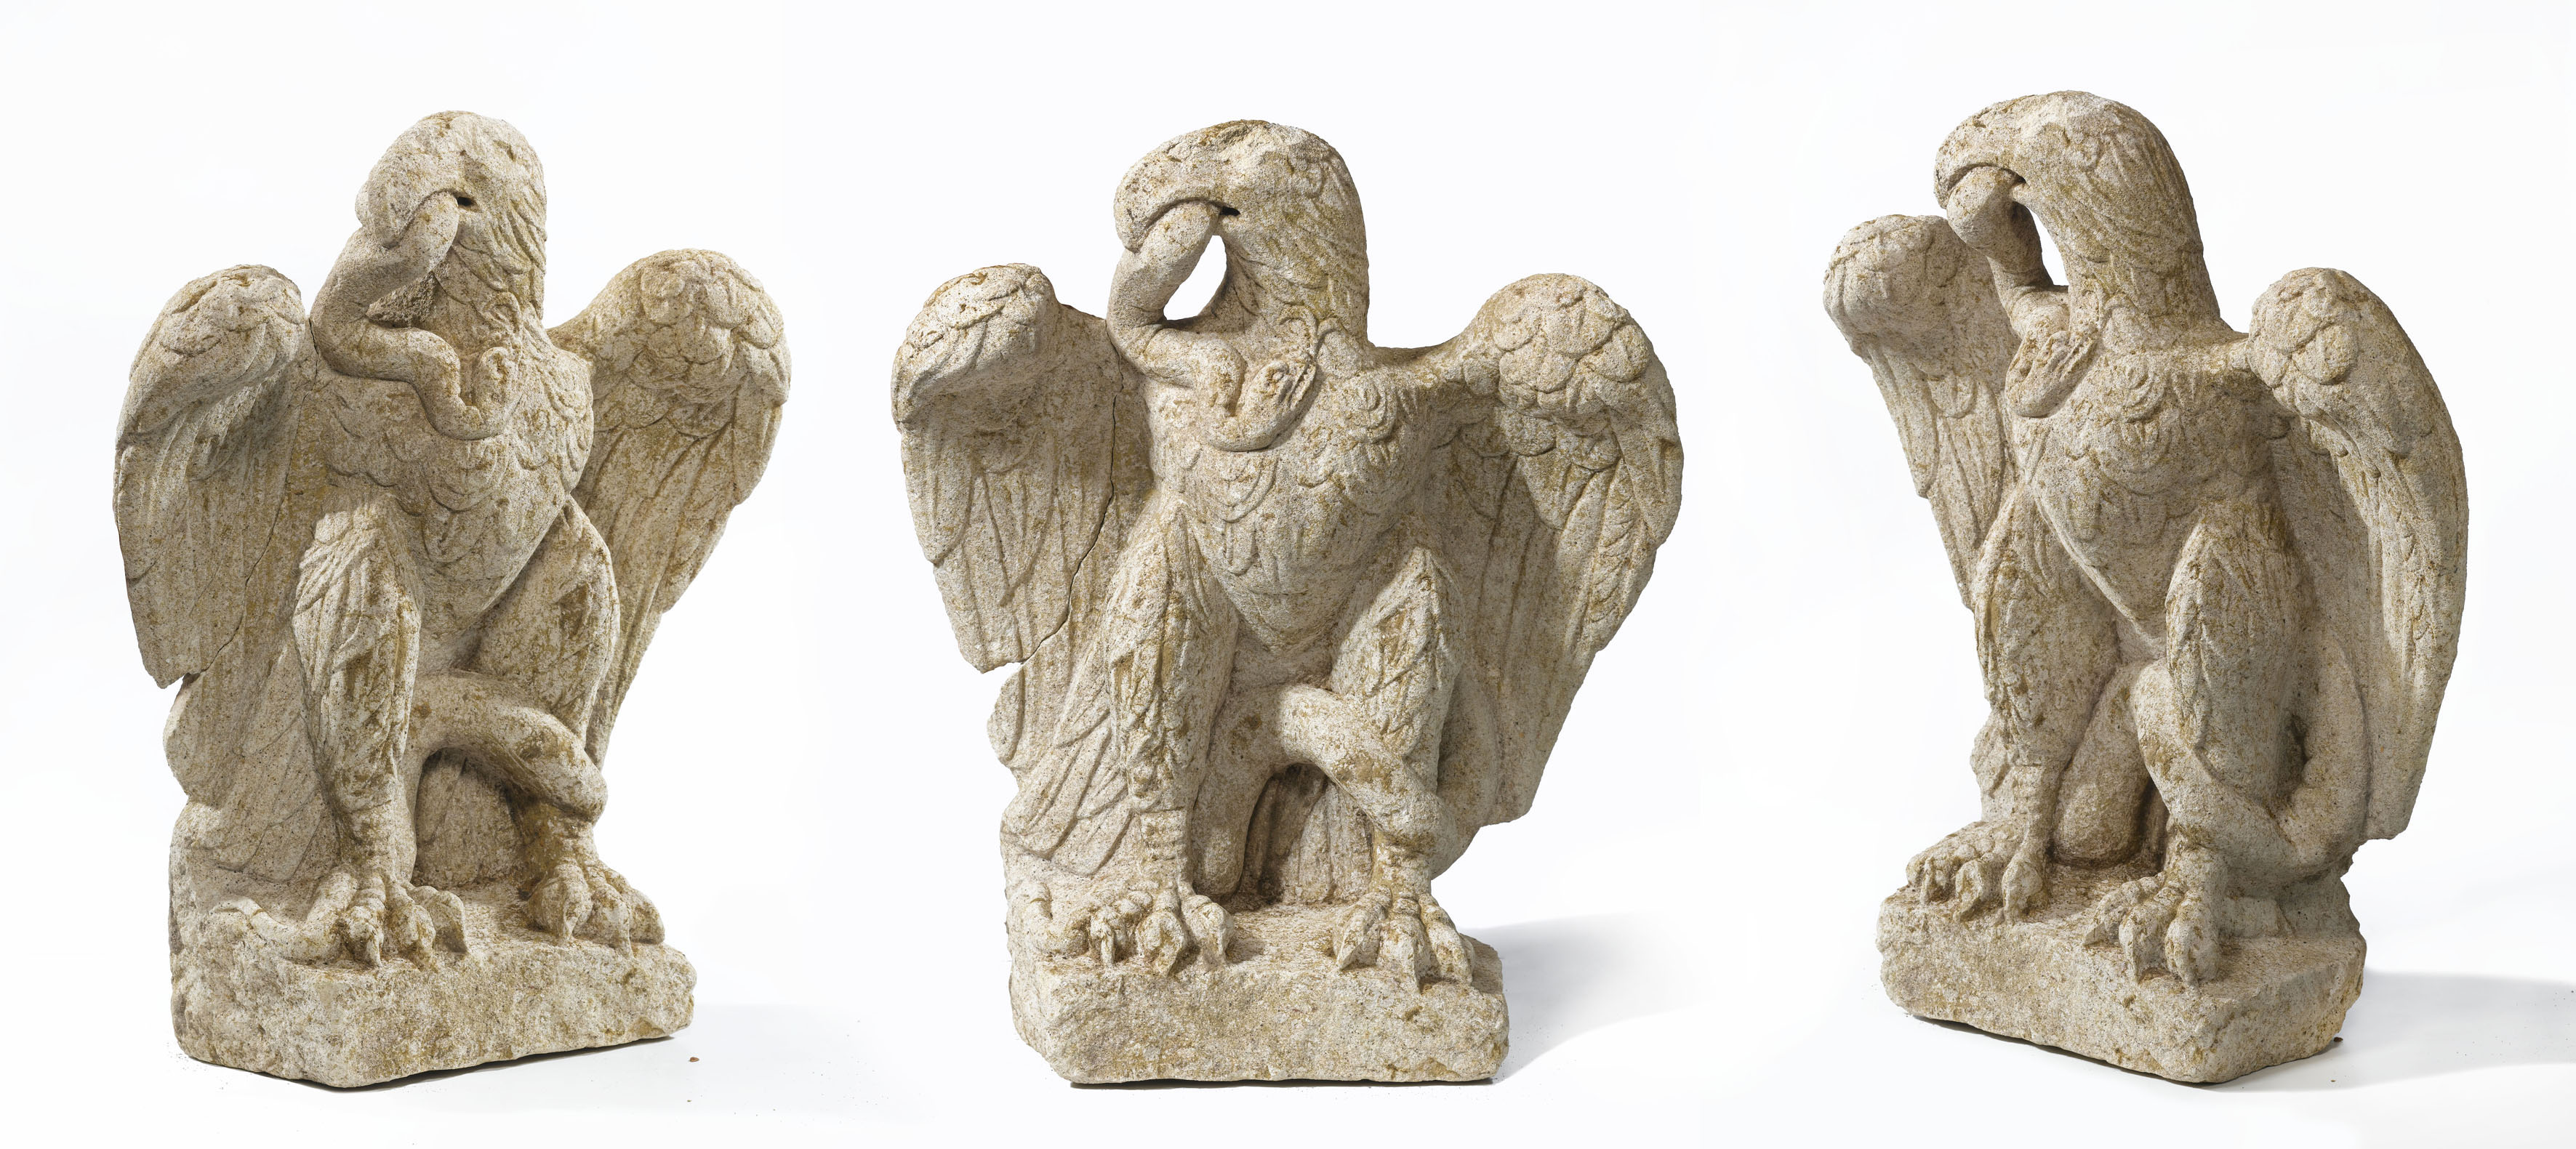 The history blog blog archive roman eagle serpent sculpture museum biocorpaavc